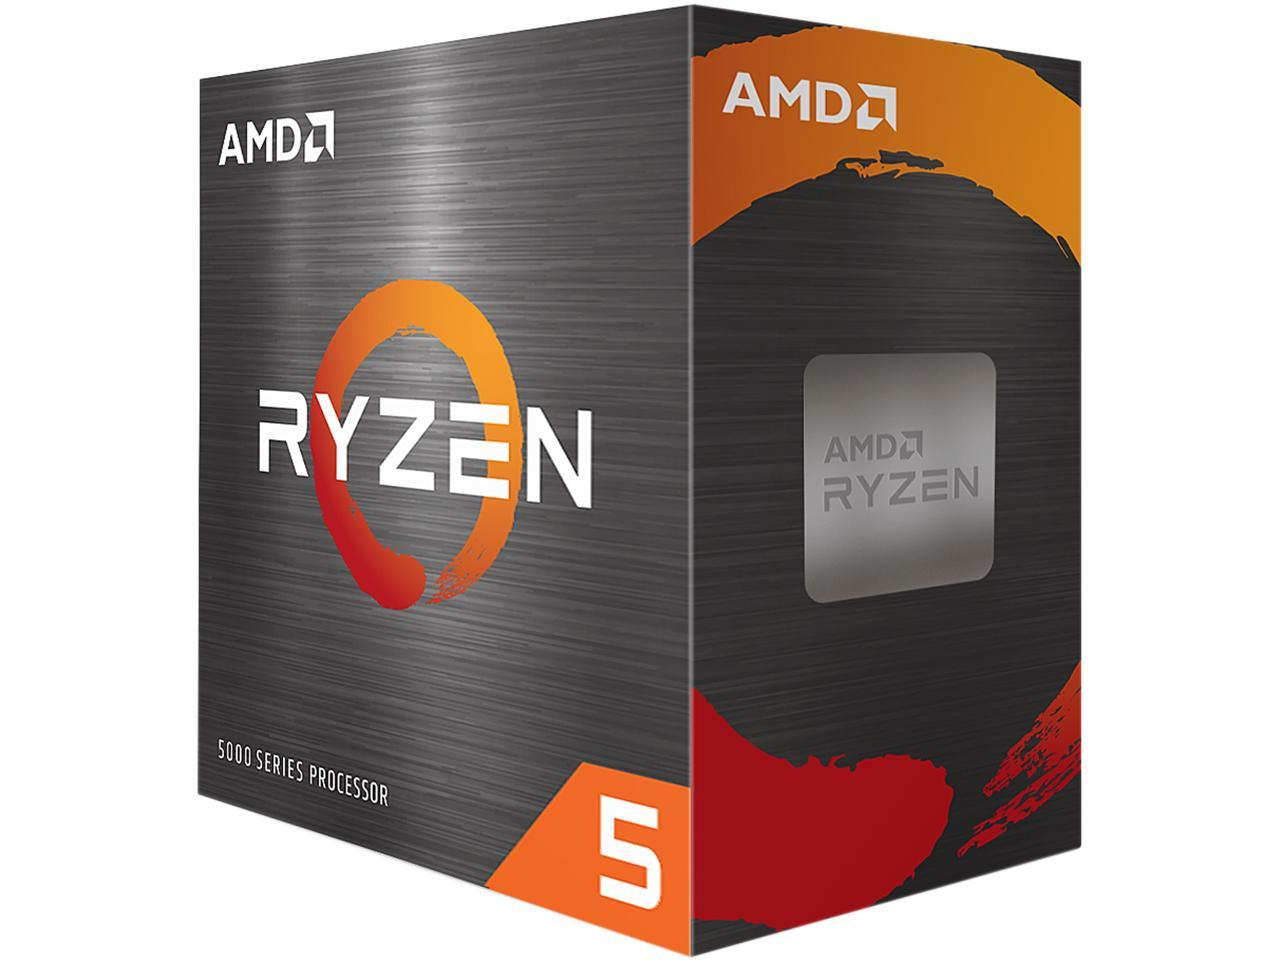 AMD Ryzen 5 5600X 6-Core 3.7 GHz Socket AM4 65W 100-100000065BOX Desktop Processor IN STOCK